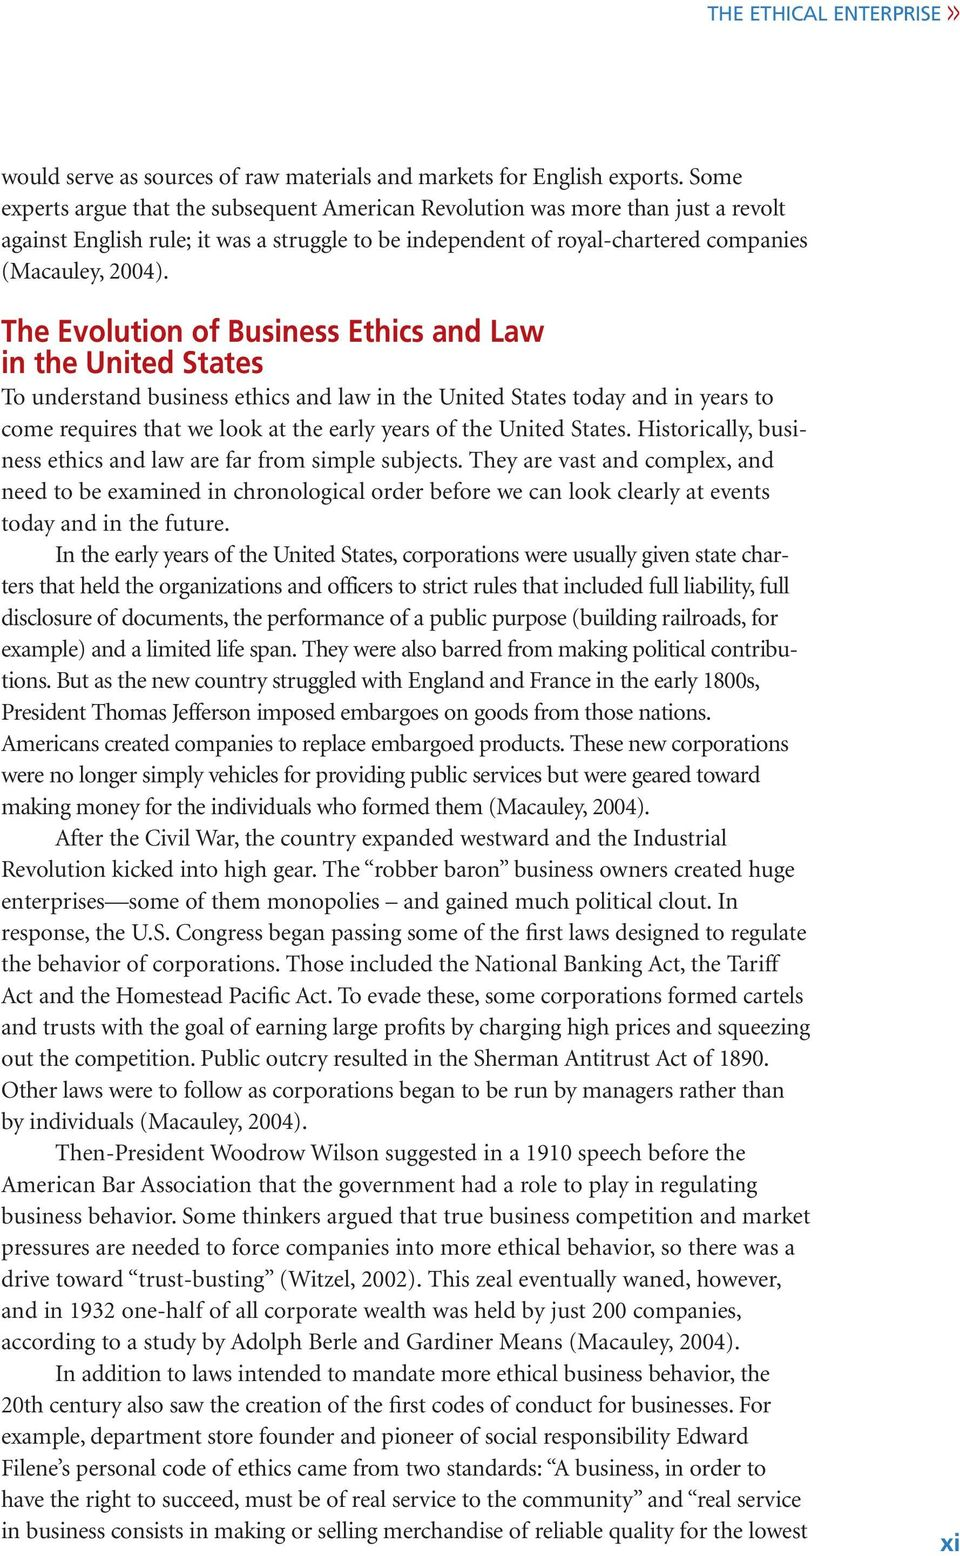 The Evolution of Business Ethics and Law in the United States To understand business ethics and law in the United States today and in years to come requires that we look at the early years of the